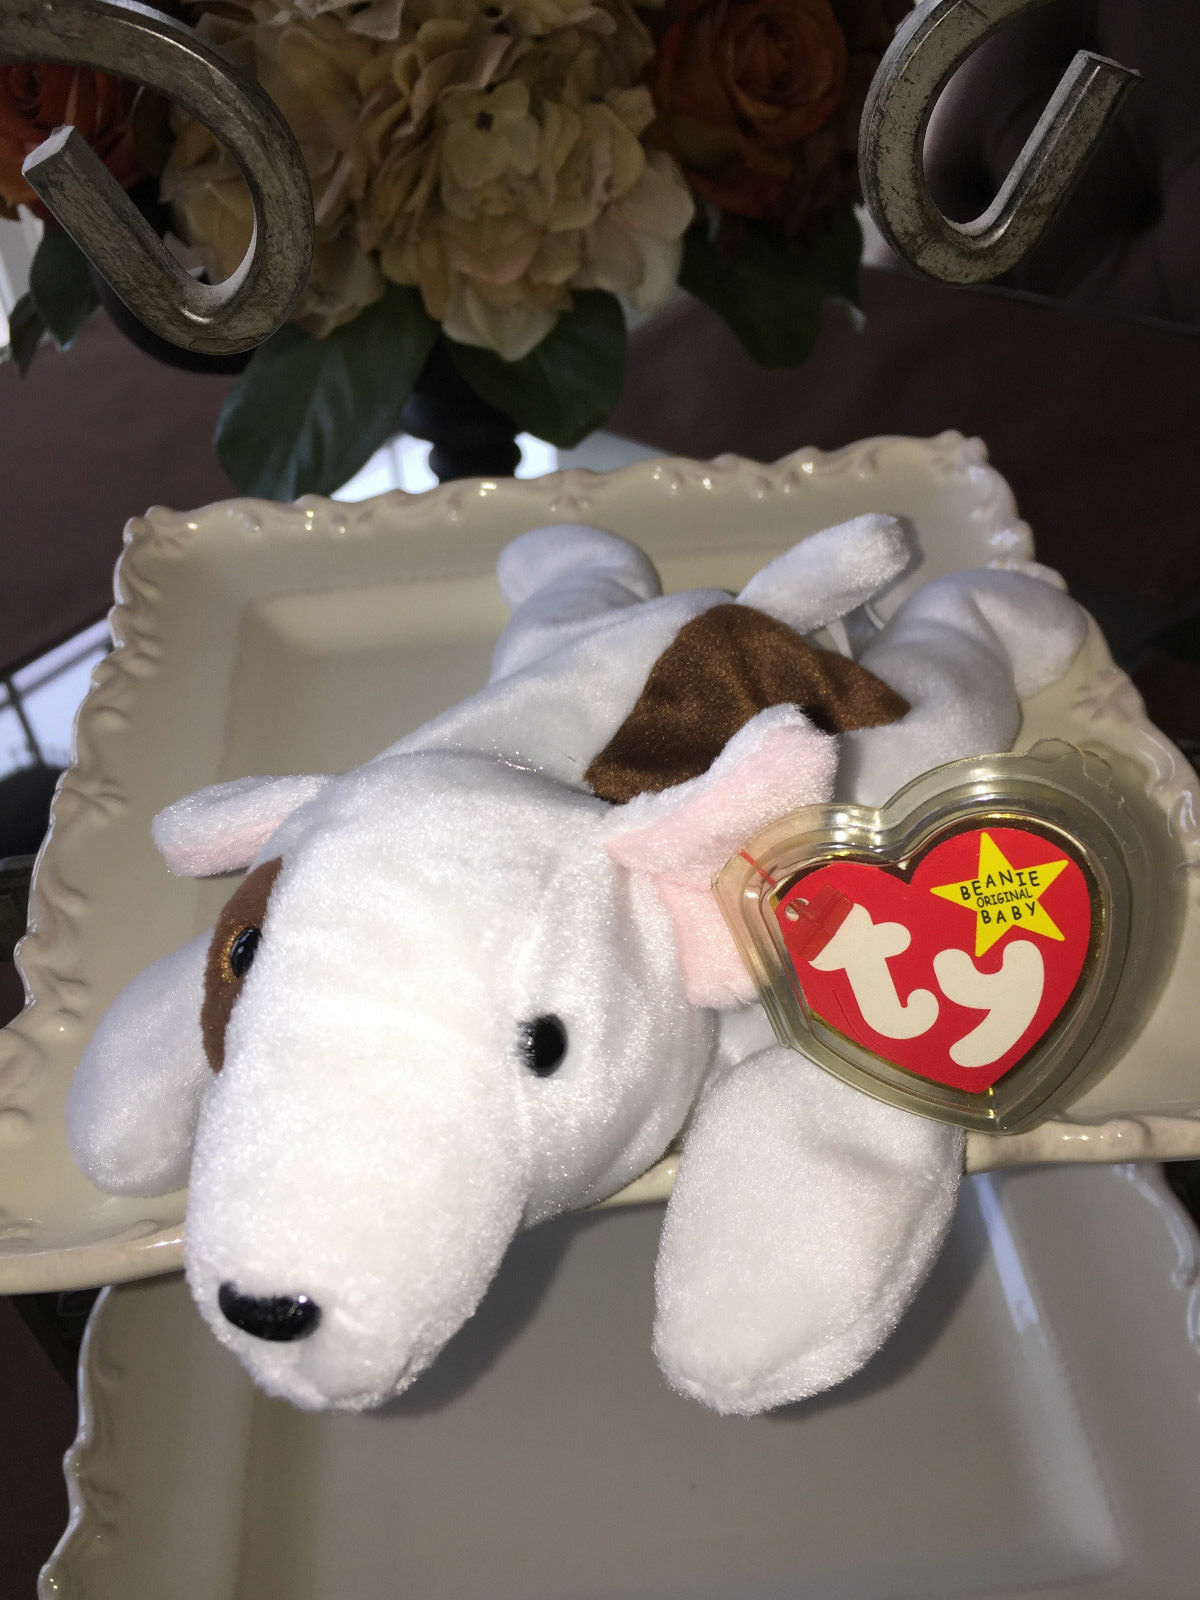 TY Beanie Baby Butch Retired, Rare Errors No Numbers Inside, 1998 1999 Mint